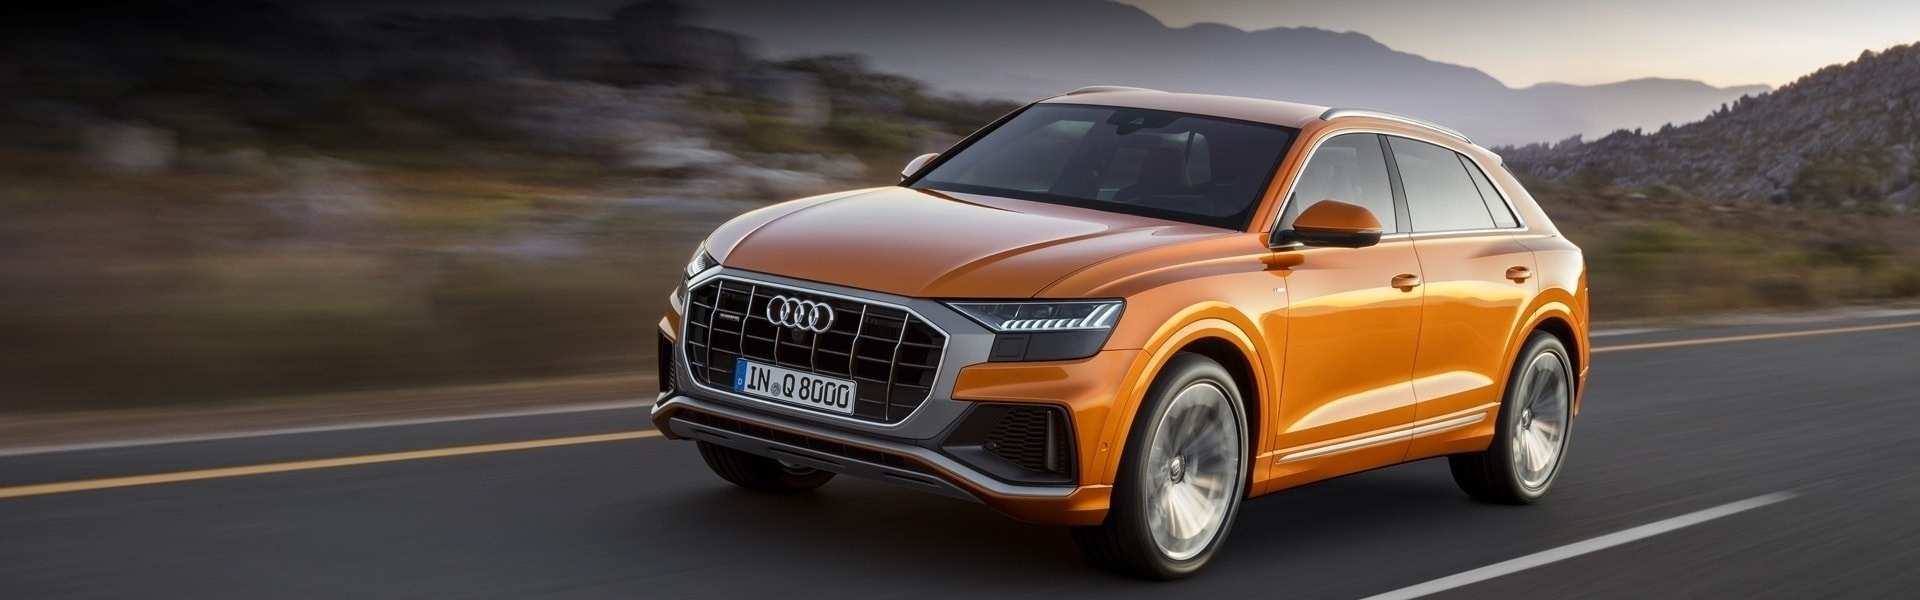 14 New 2019 Audi Q8Quotes Rumors